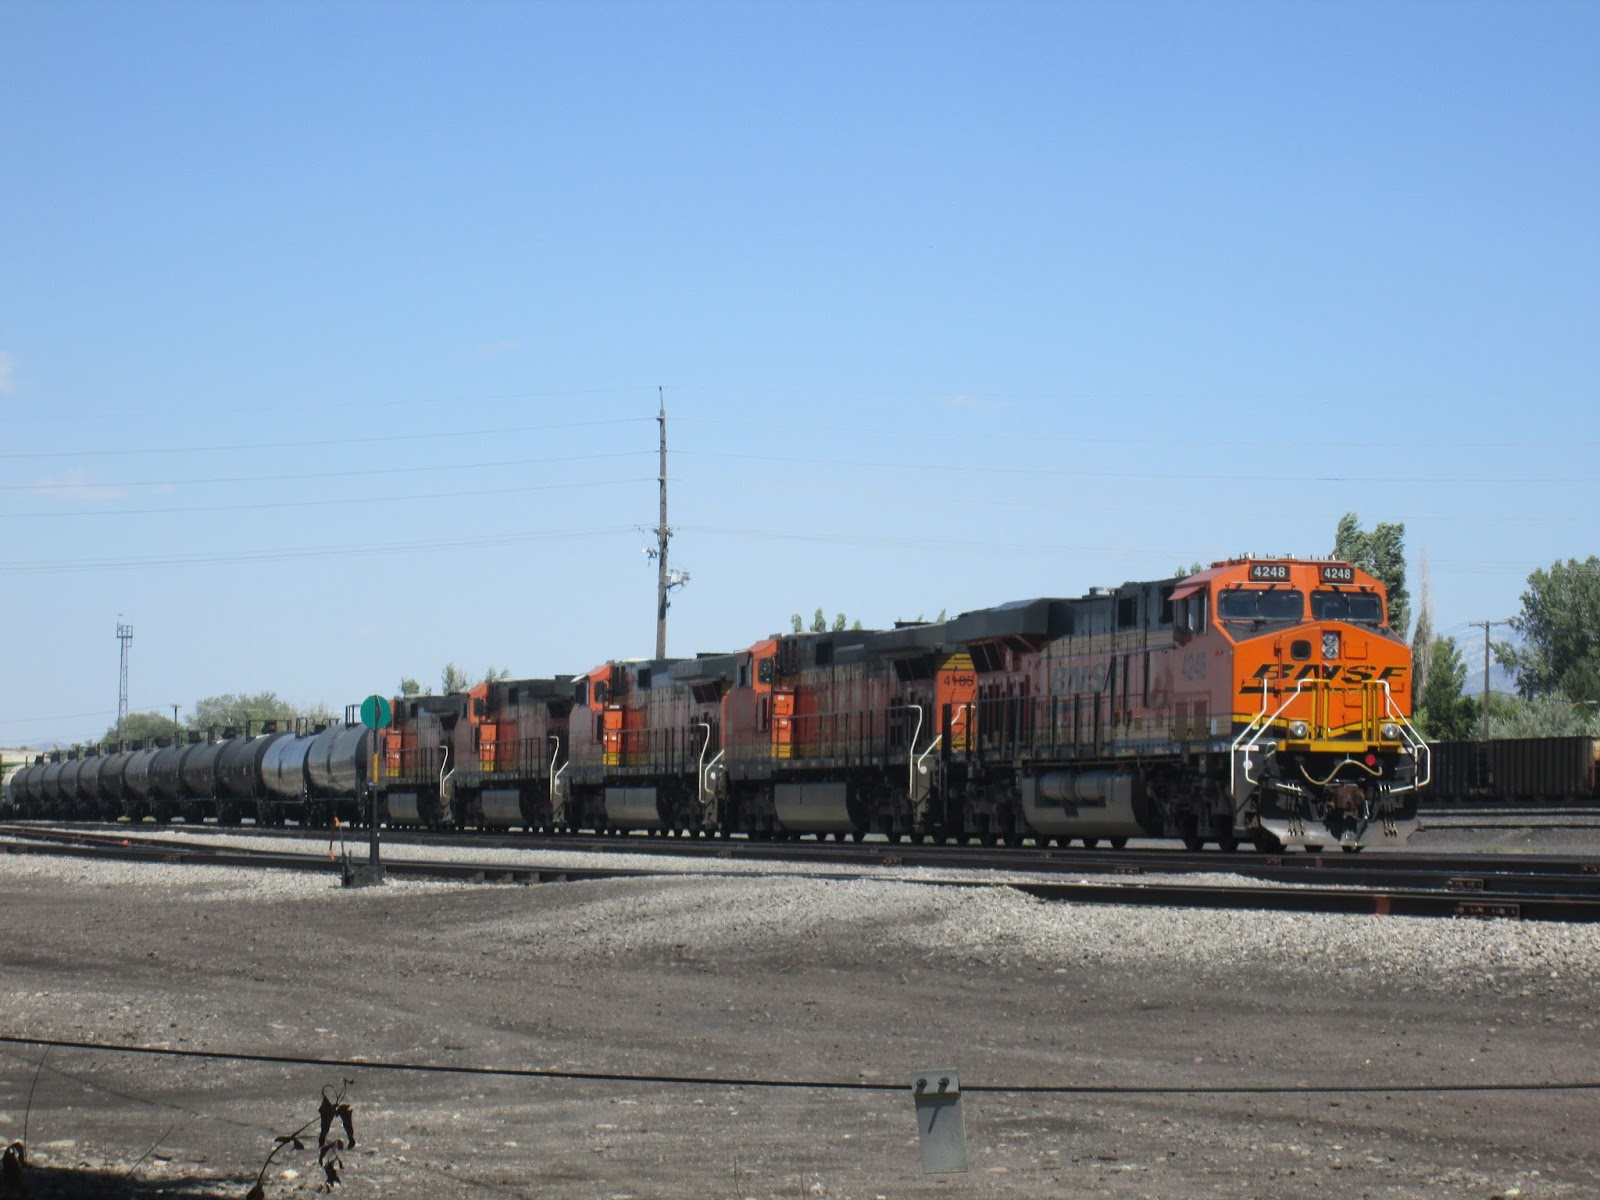 The Desert Empire Project: BNSF, the Utah Railway, and the Railfan